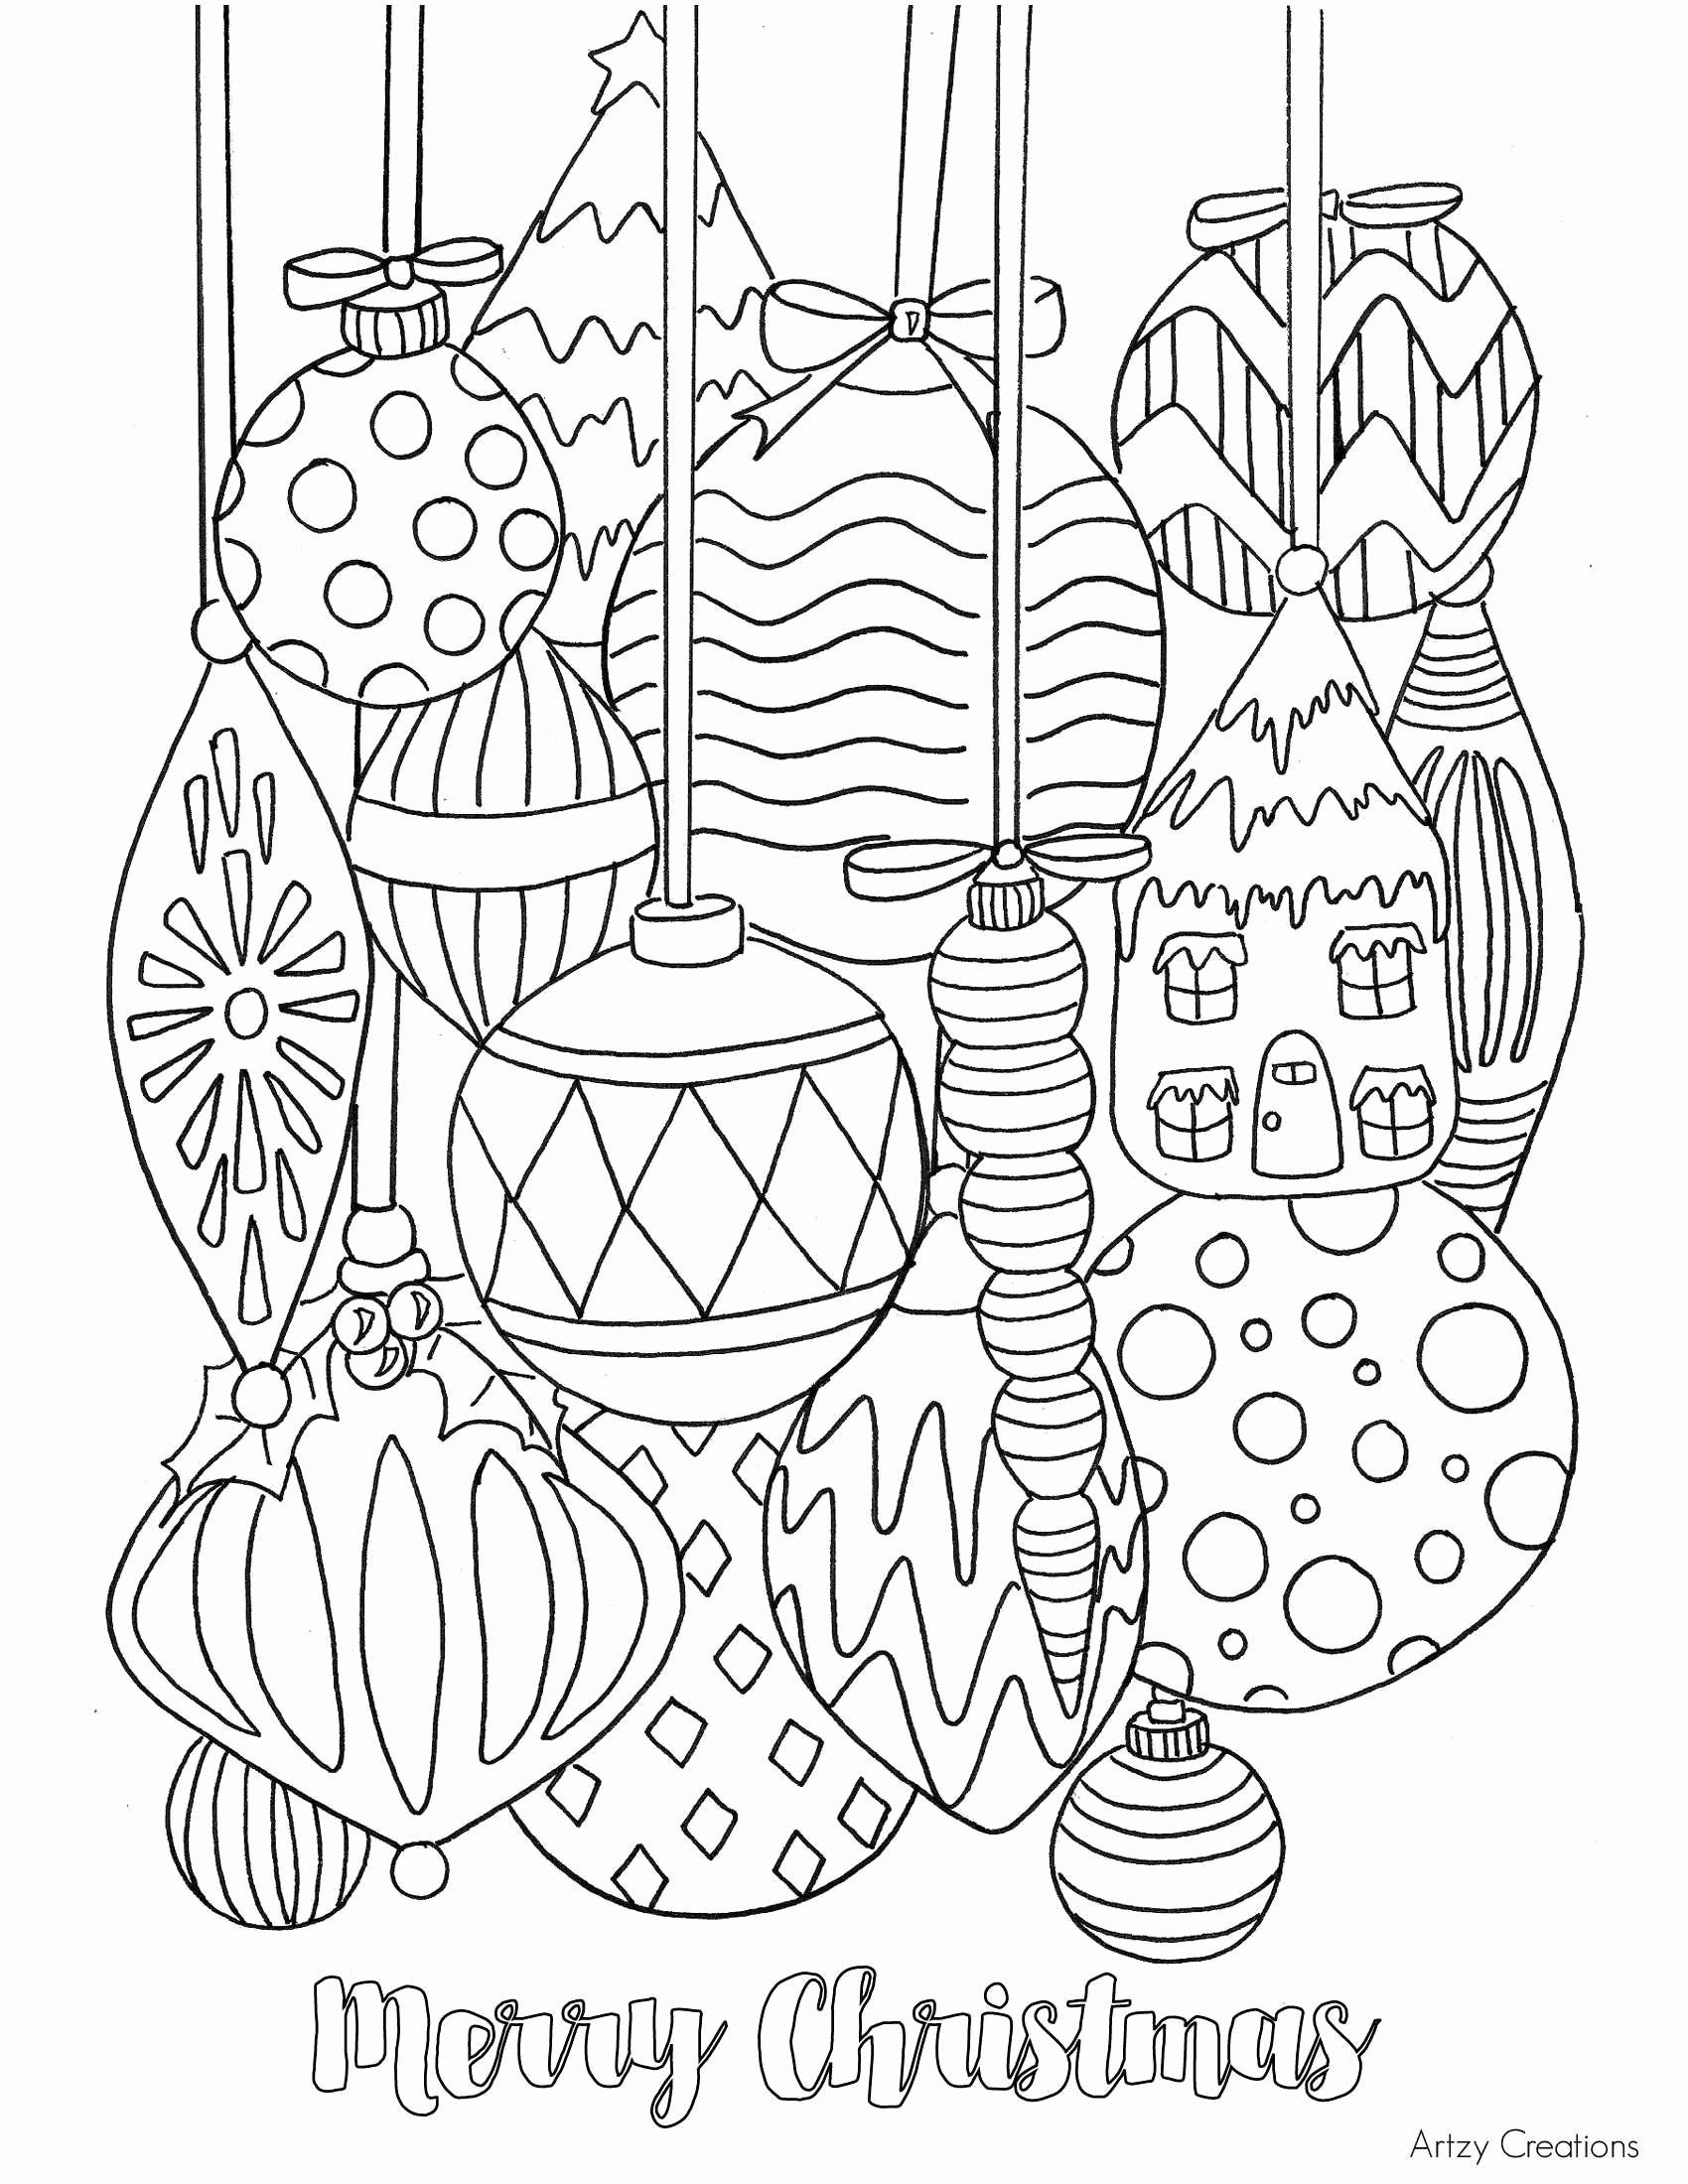 Thanksgiving Coloring Sheets Free Printable Unique Witch Feet Colorin In 2020 Free Christmas Coloring Pages Printable Christmas Coloring Pages Christmas Coloring Books